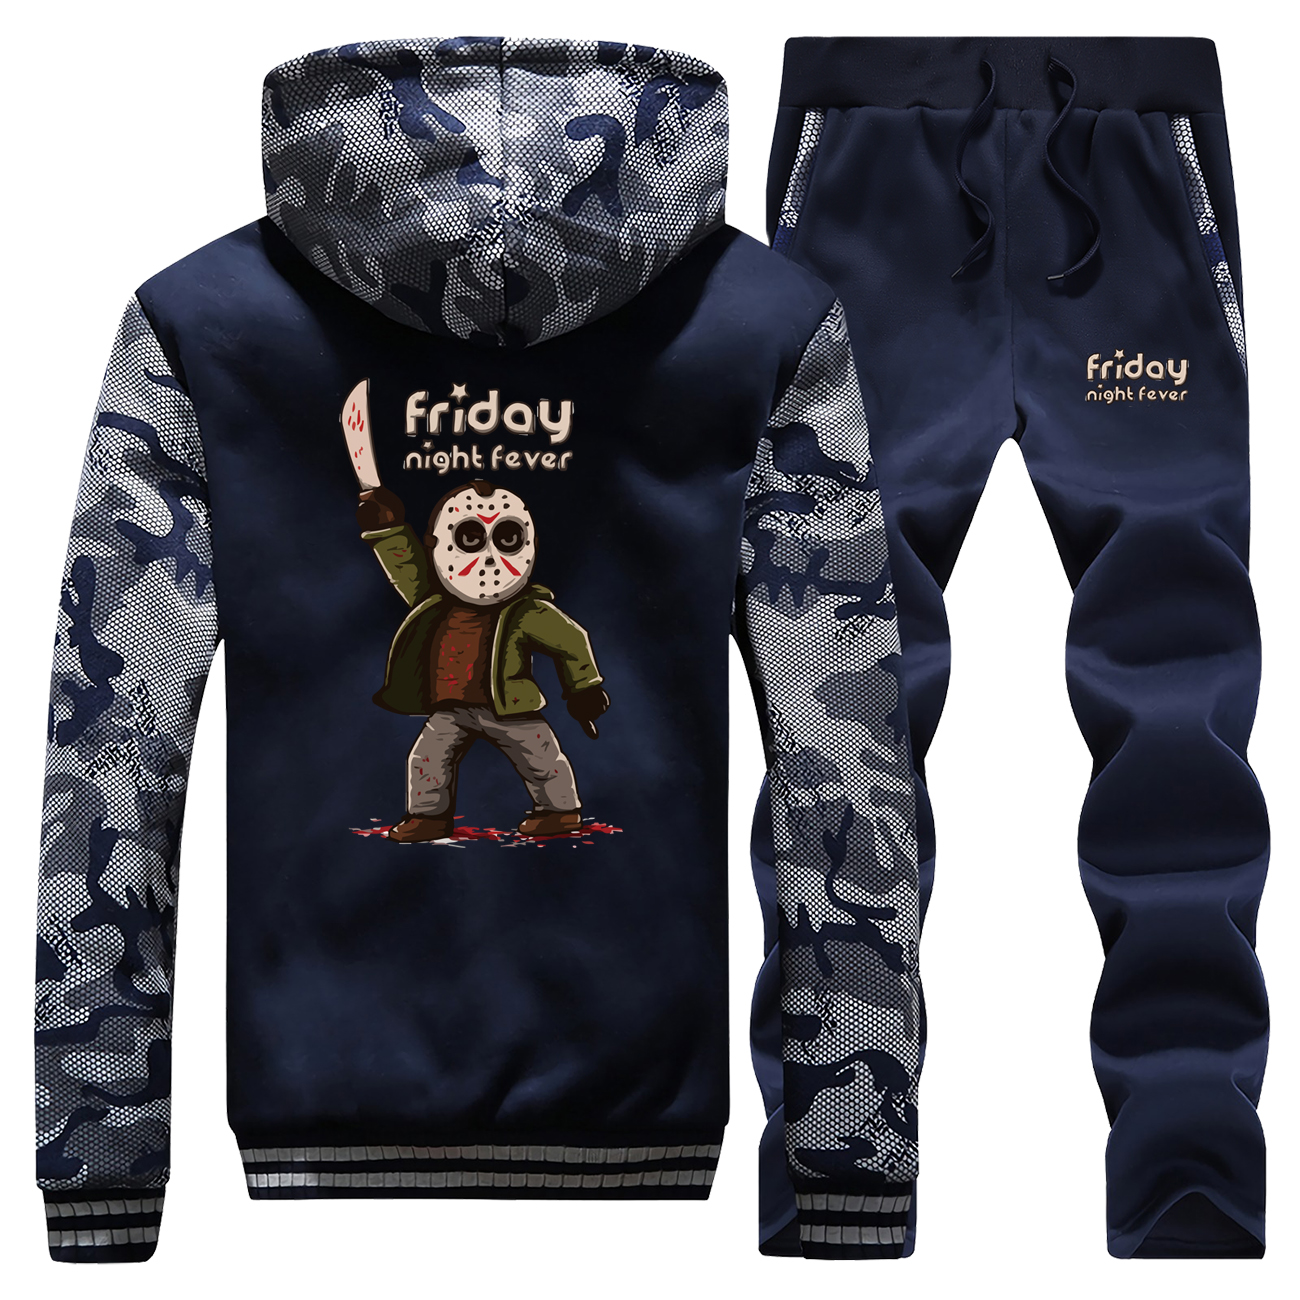 Horrorr Prison Men's Camo Sets Friday The 13th Thick Jacket 2019 Winter Warm Tracksuit Fleece Pants Sweatshirts Fashion Gym Suit